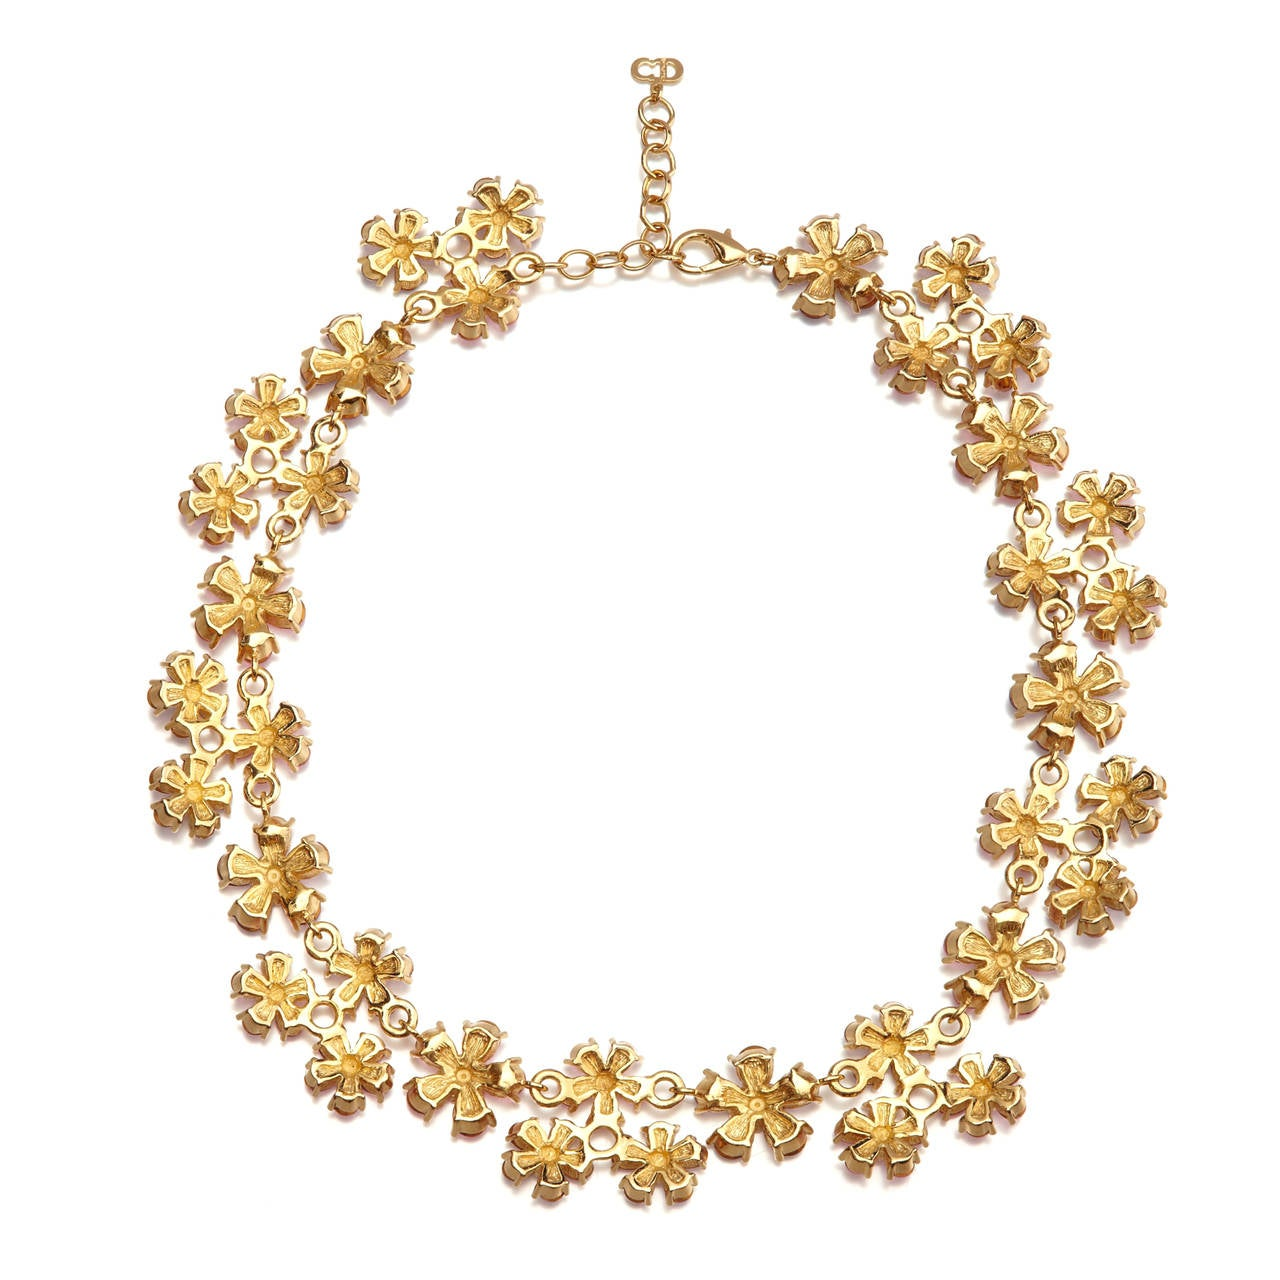 Vintage Christian Dior Floral Necklace 4